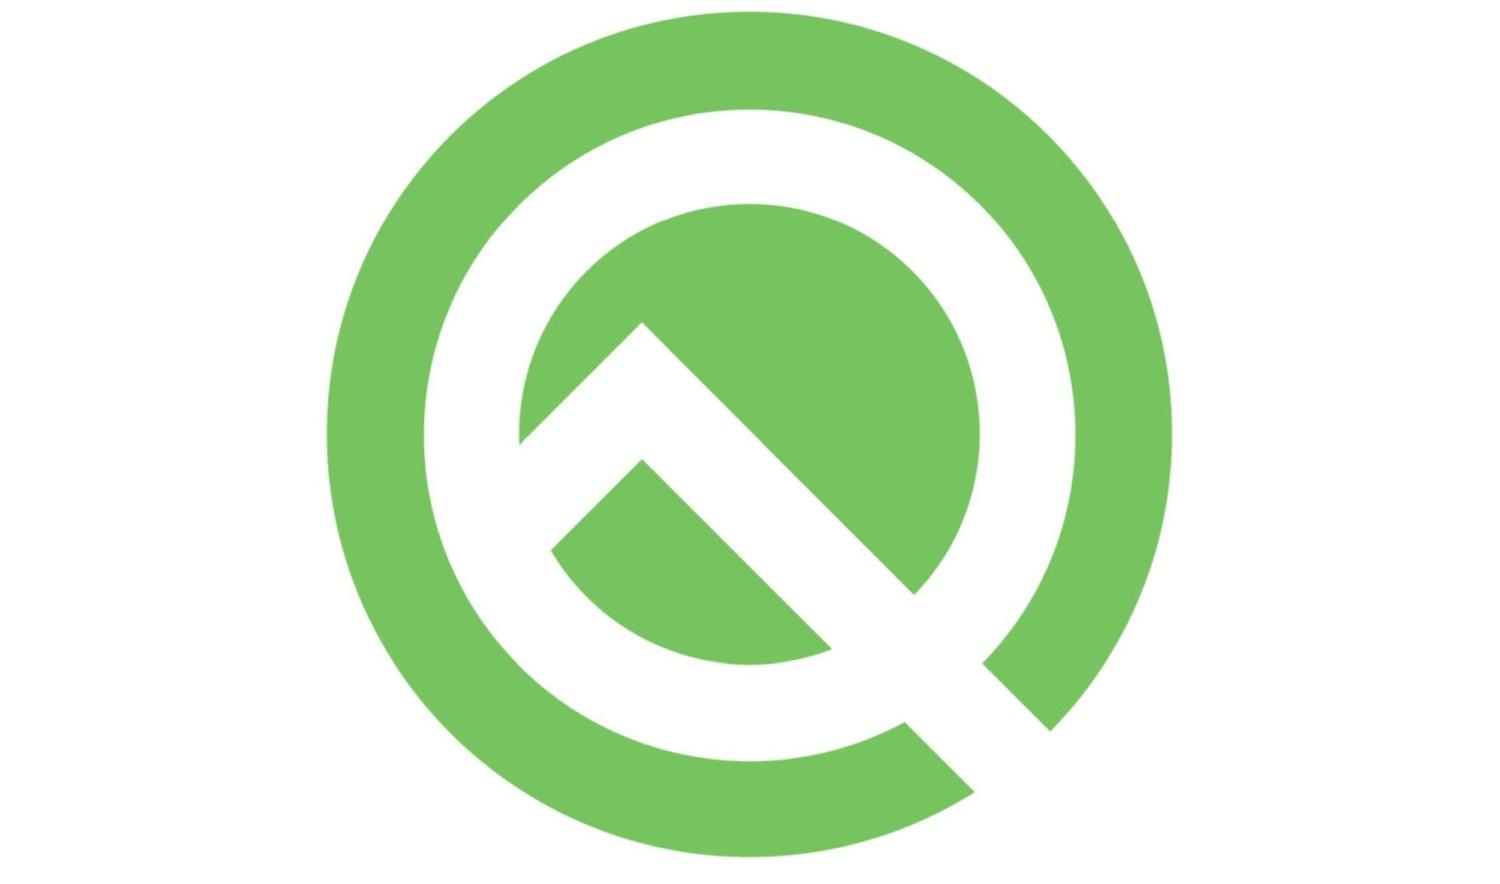 android q logo final